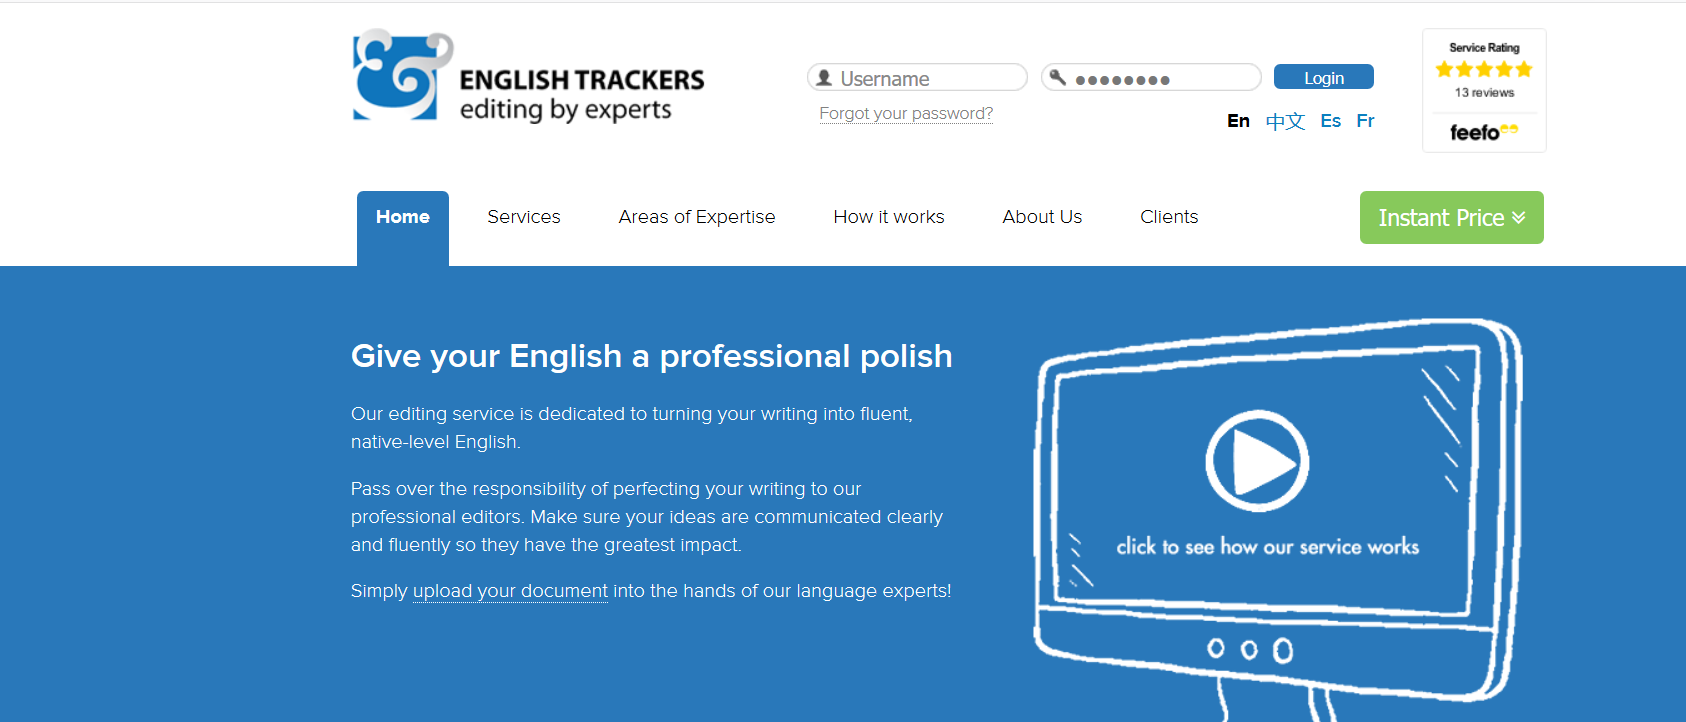 english trackers